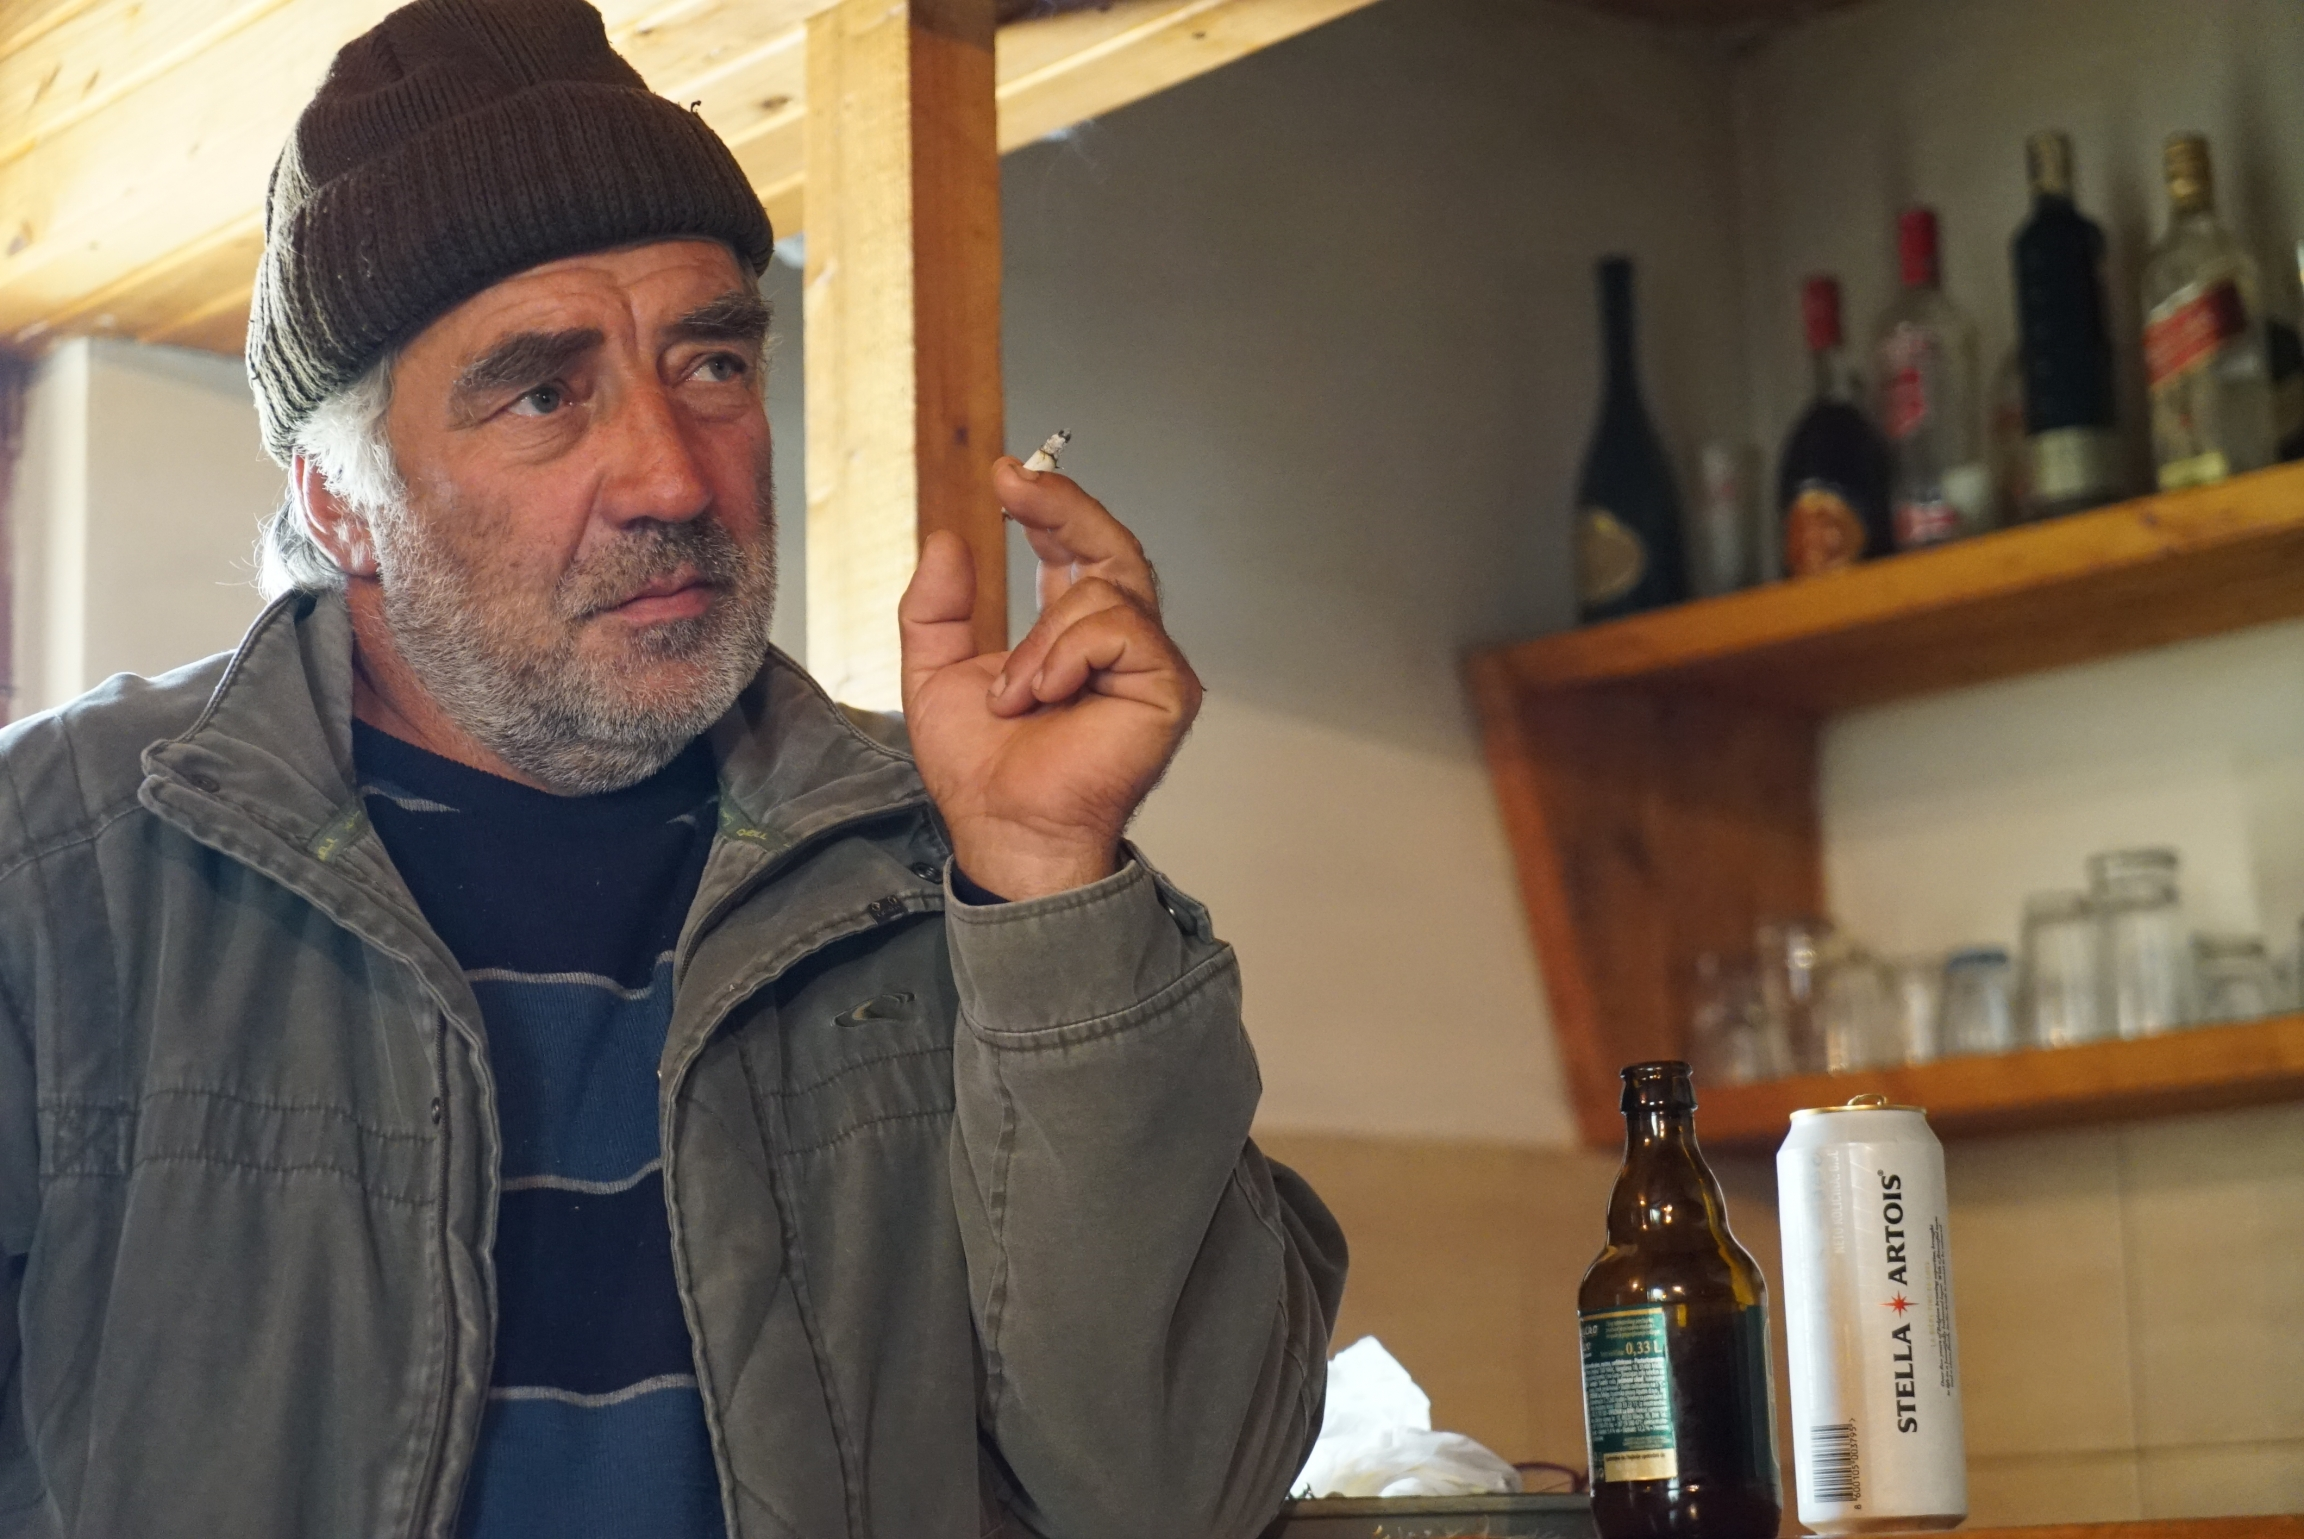 A man wearing a hat smokes a cigarette at the bar with an open beer